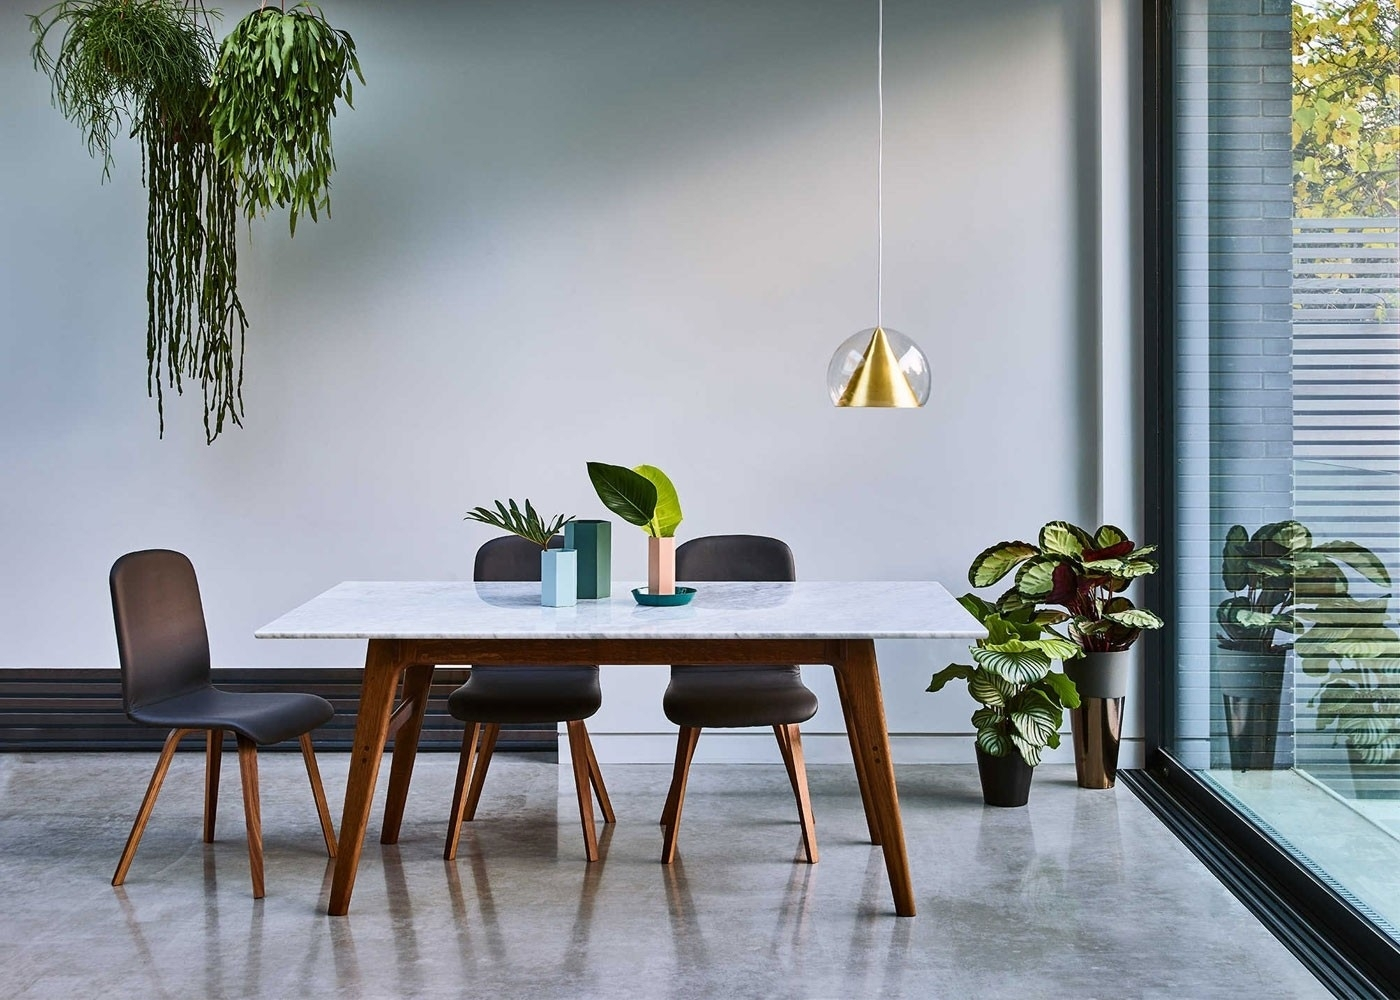 Heal's Blake Dining Table Marble Dark Oak | Heal's Inside Current Wyatt Dining Tables (View 18 of 20)